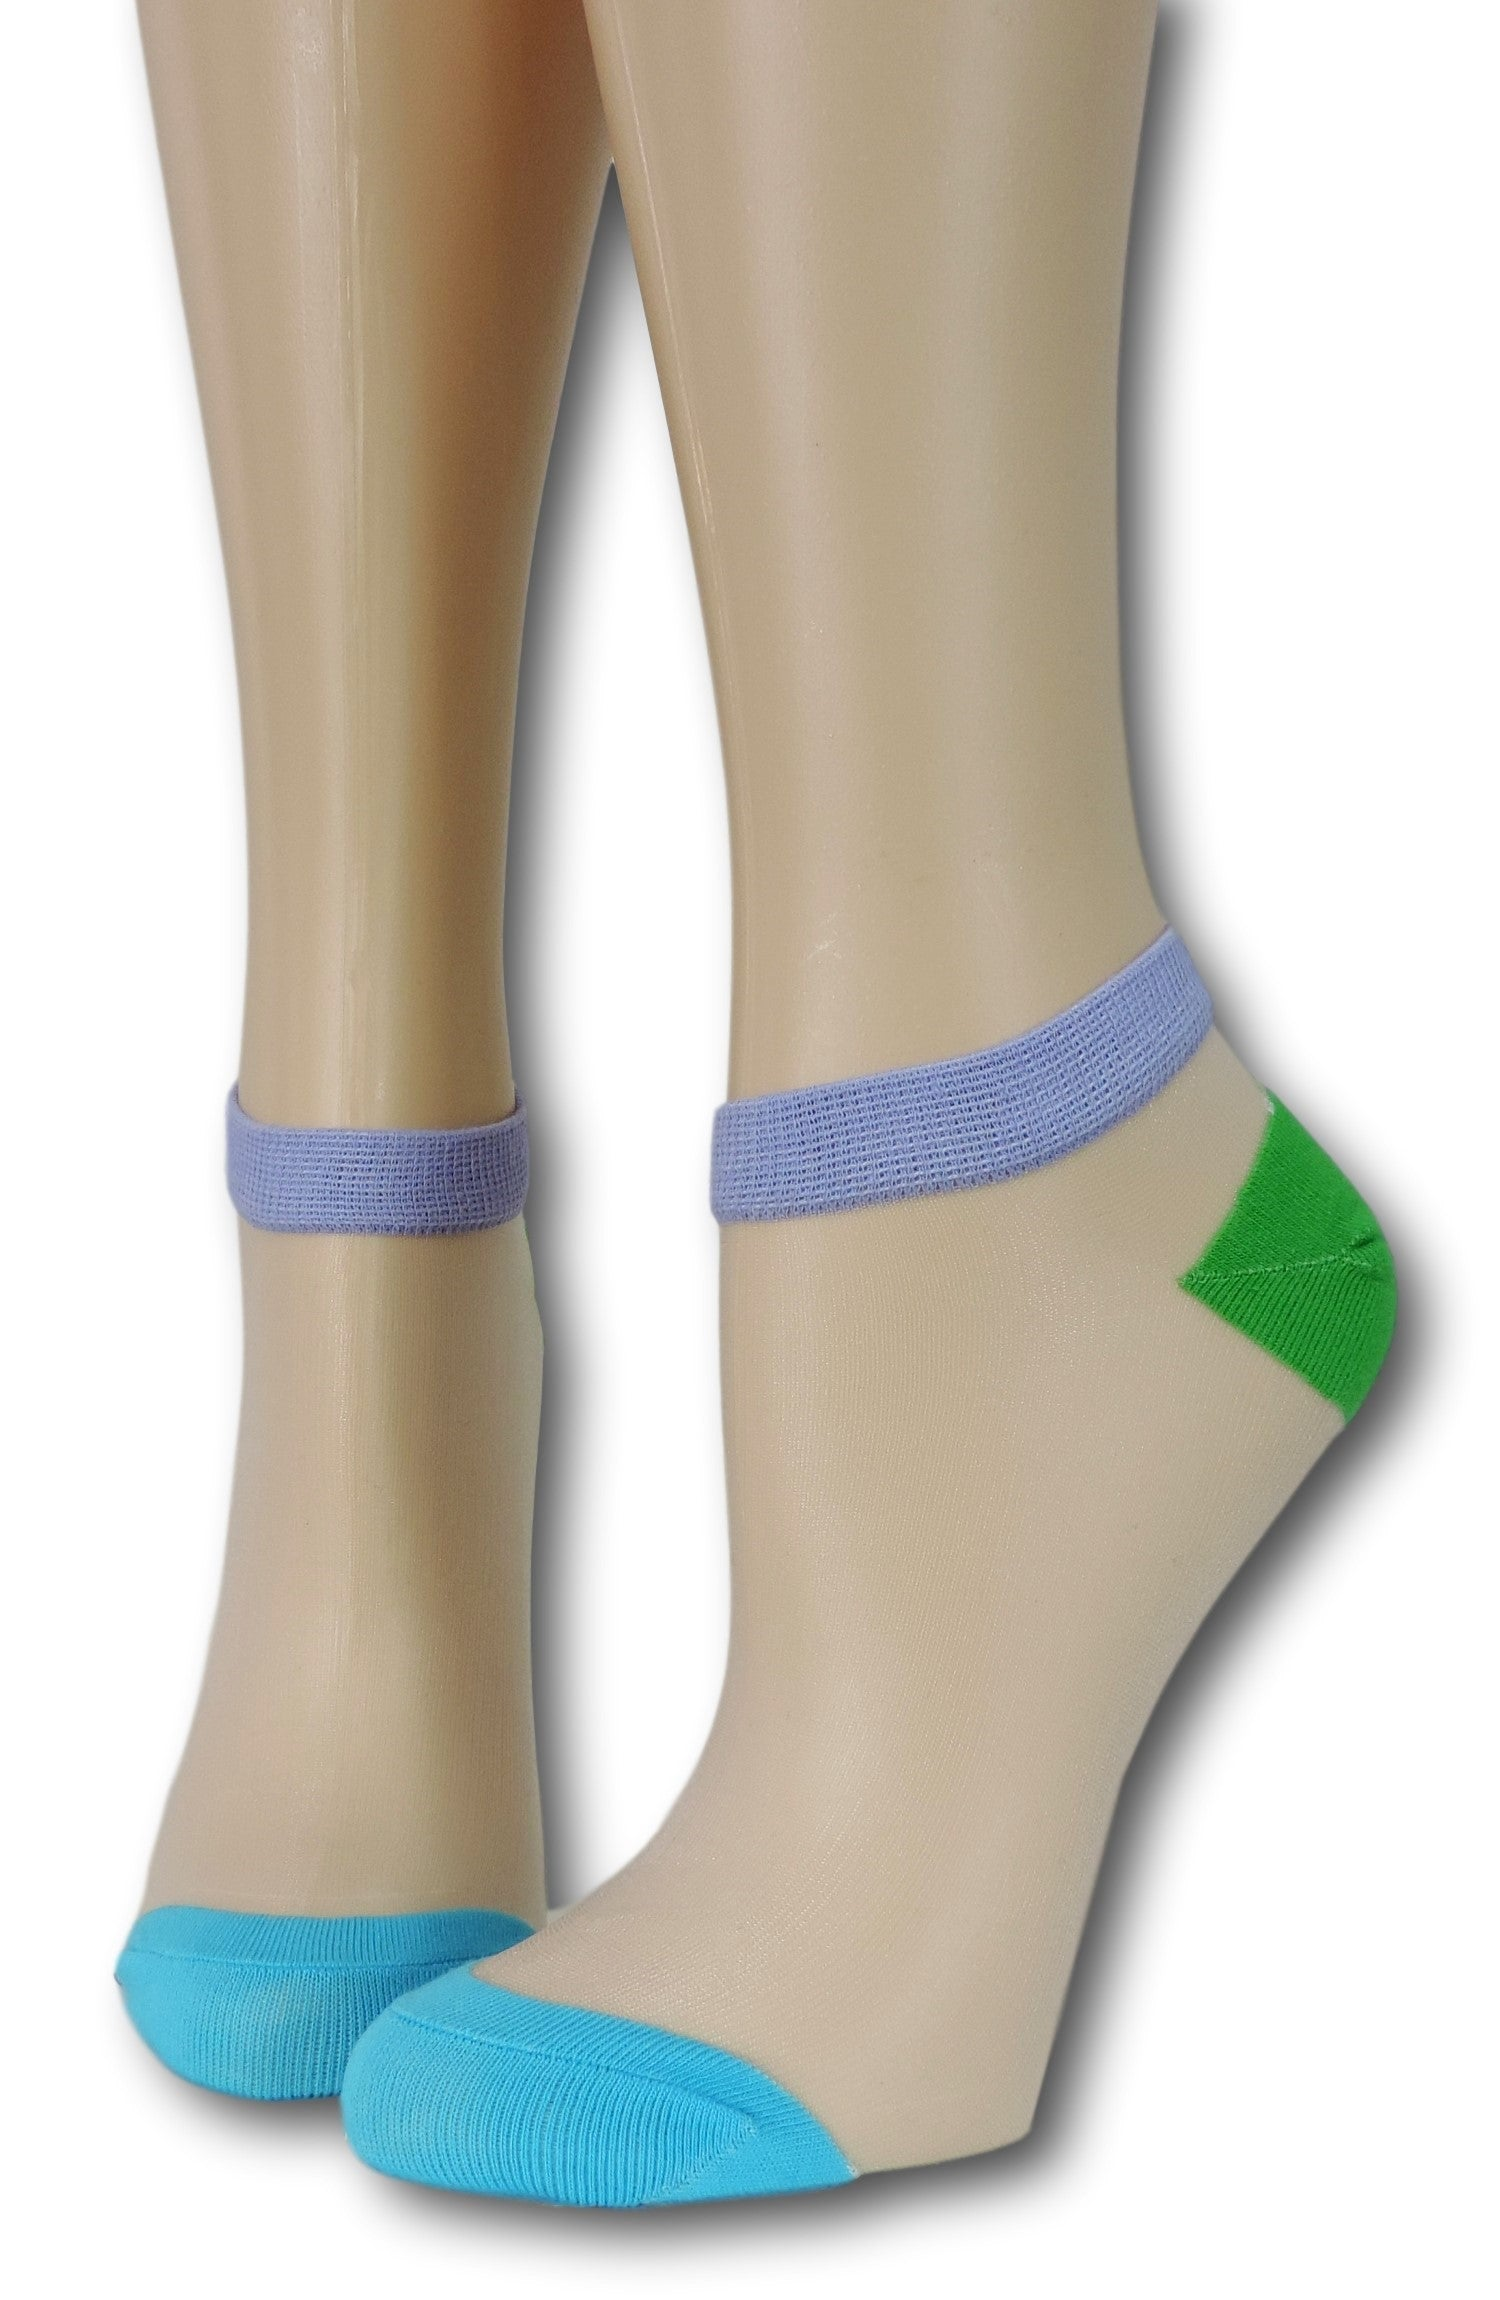 Blue-Green Ankle Sheer Socks